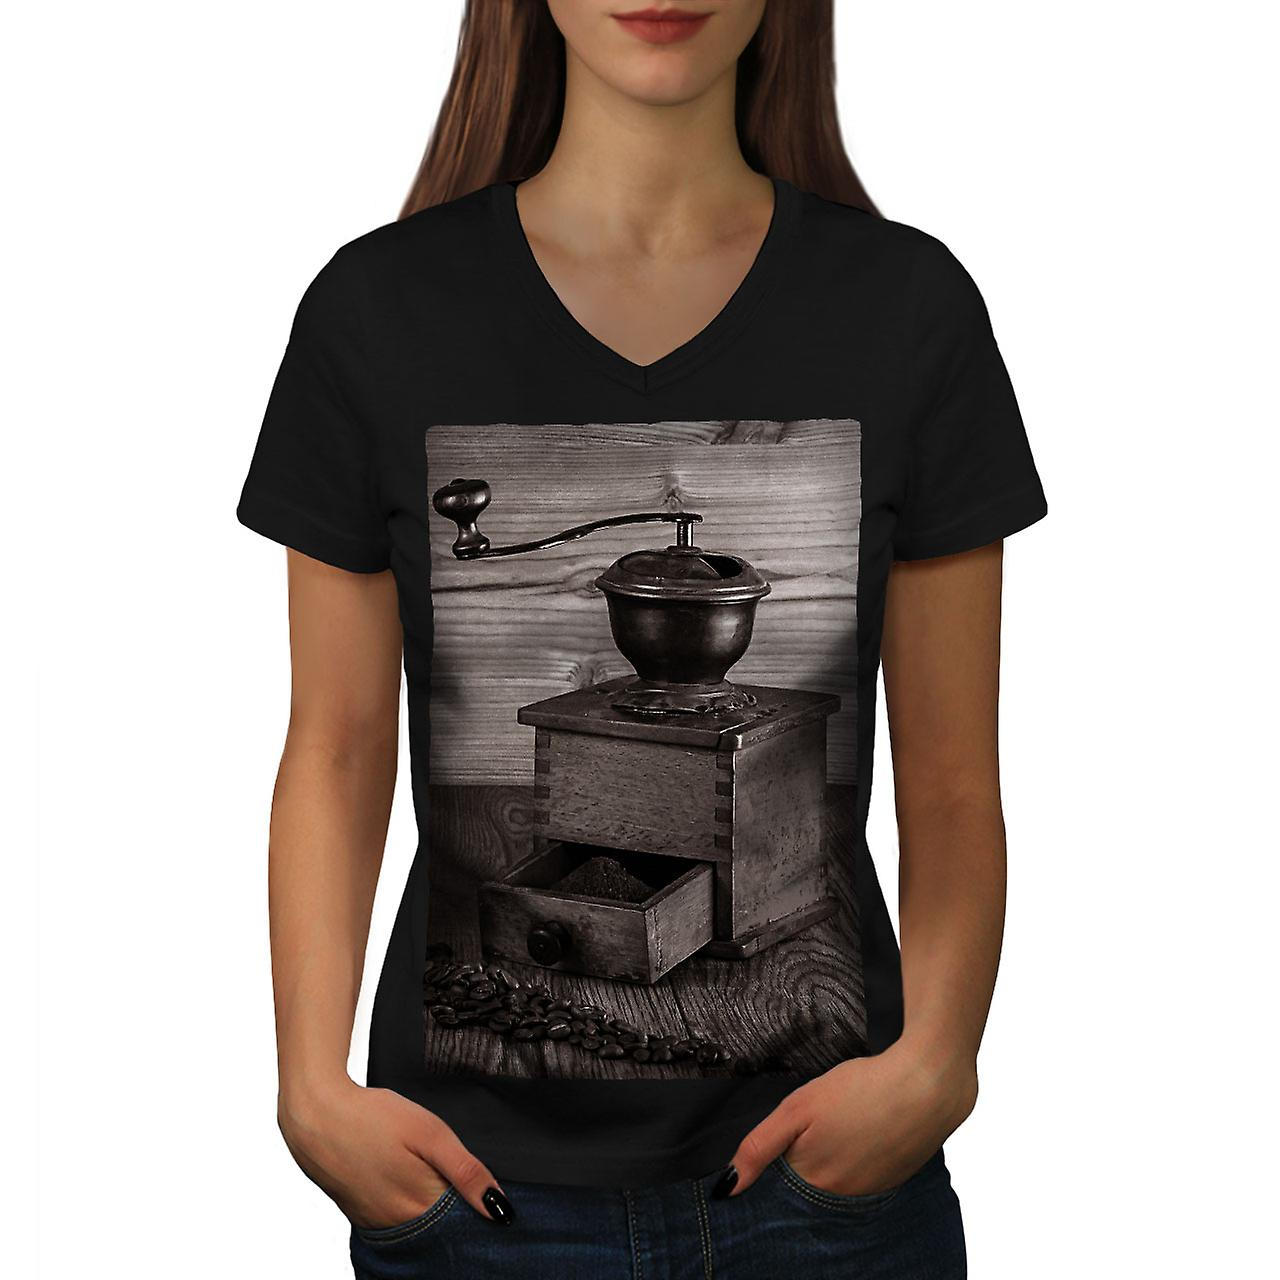 Coole Frauen Kaffee Alte Coole Frauen Blackv Neck T Shirt Wellcoda